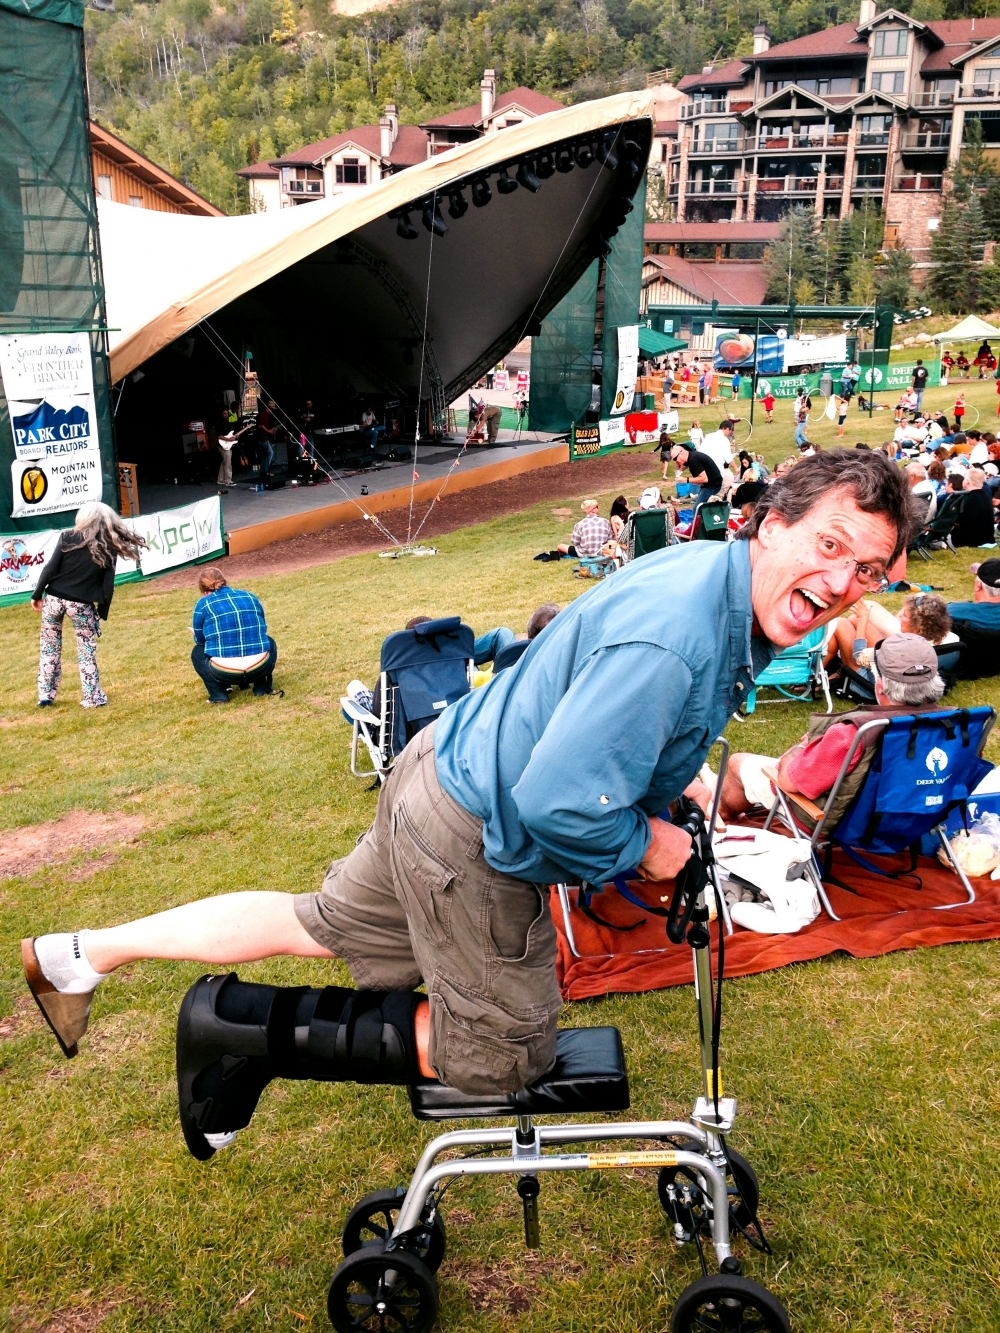 Robert on the Free Spirit Knee Walker from Park City Connecticut August 2014